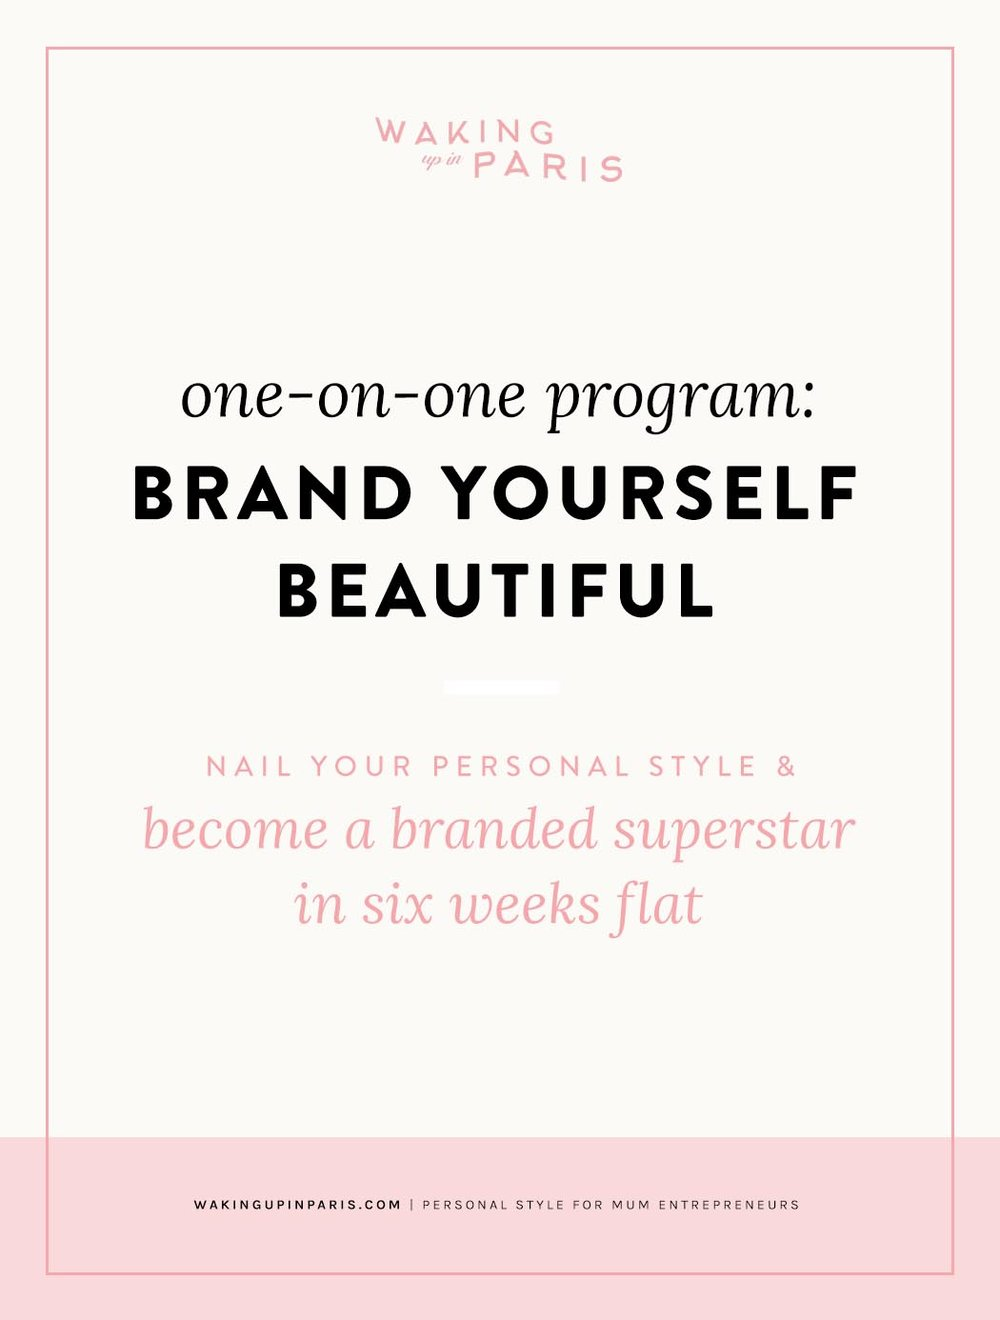 WUIP-clarissa-grace-personal-style-coach-online-mum-entrepreneur-business-brand-yourself-beautiful-10.jpg